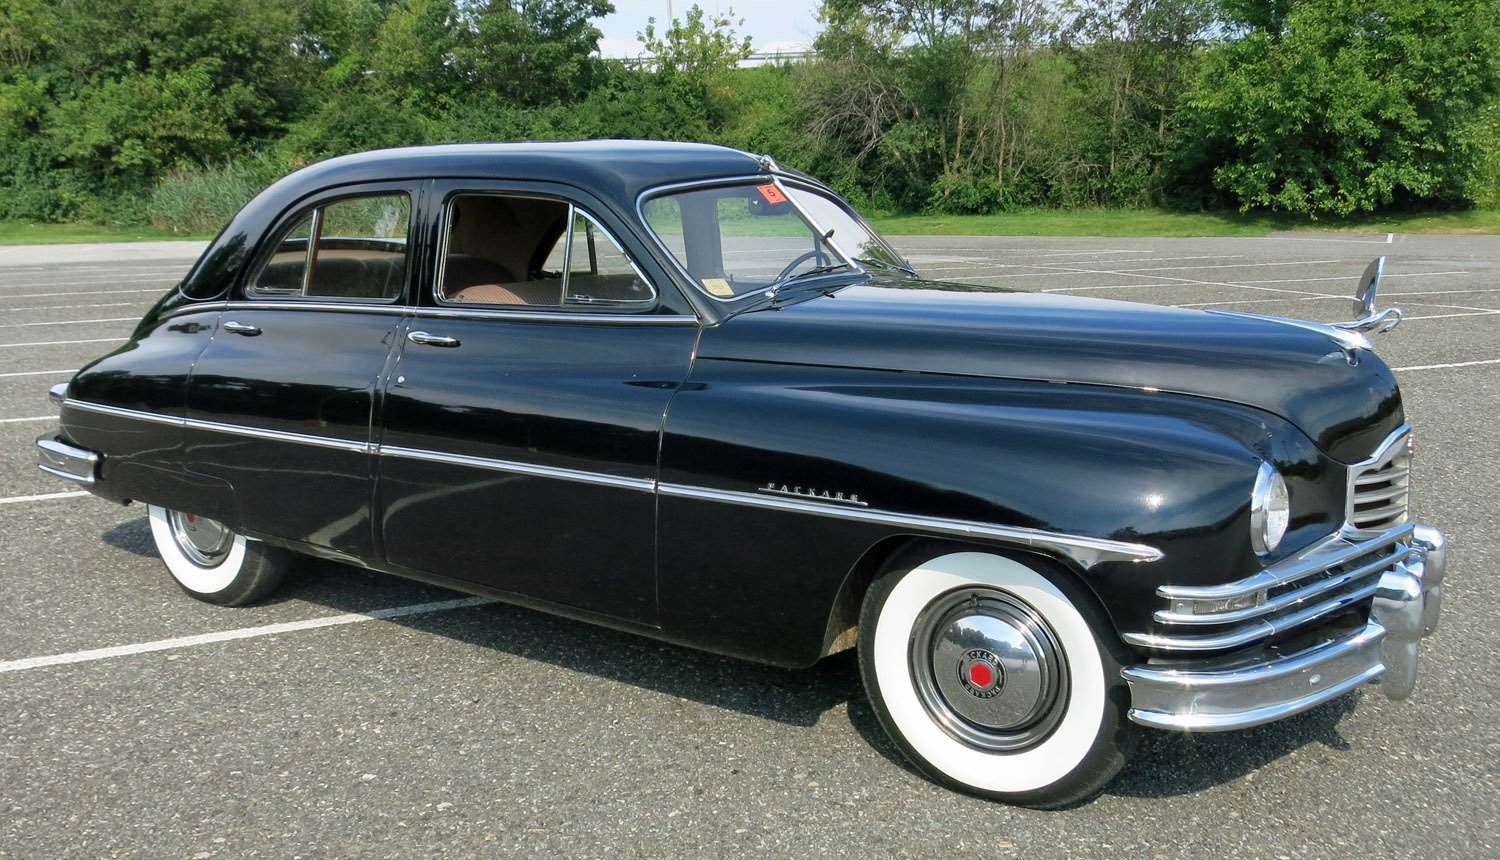 1950 packard deluxe touring sedan